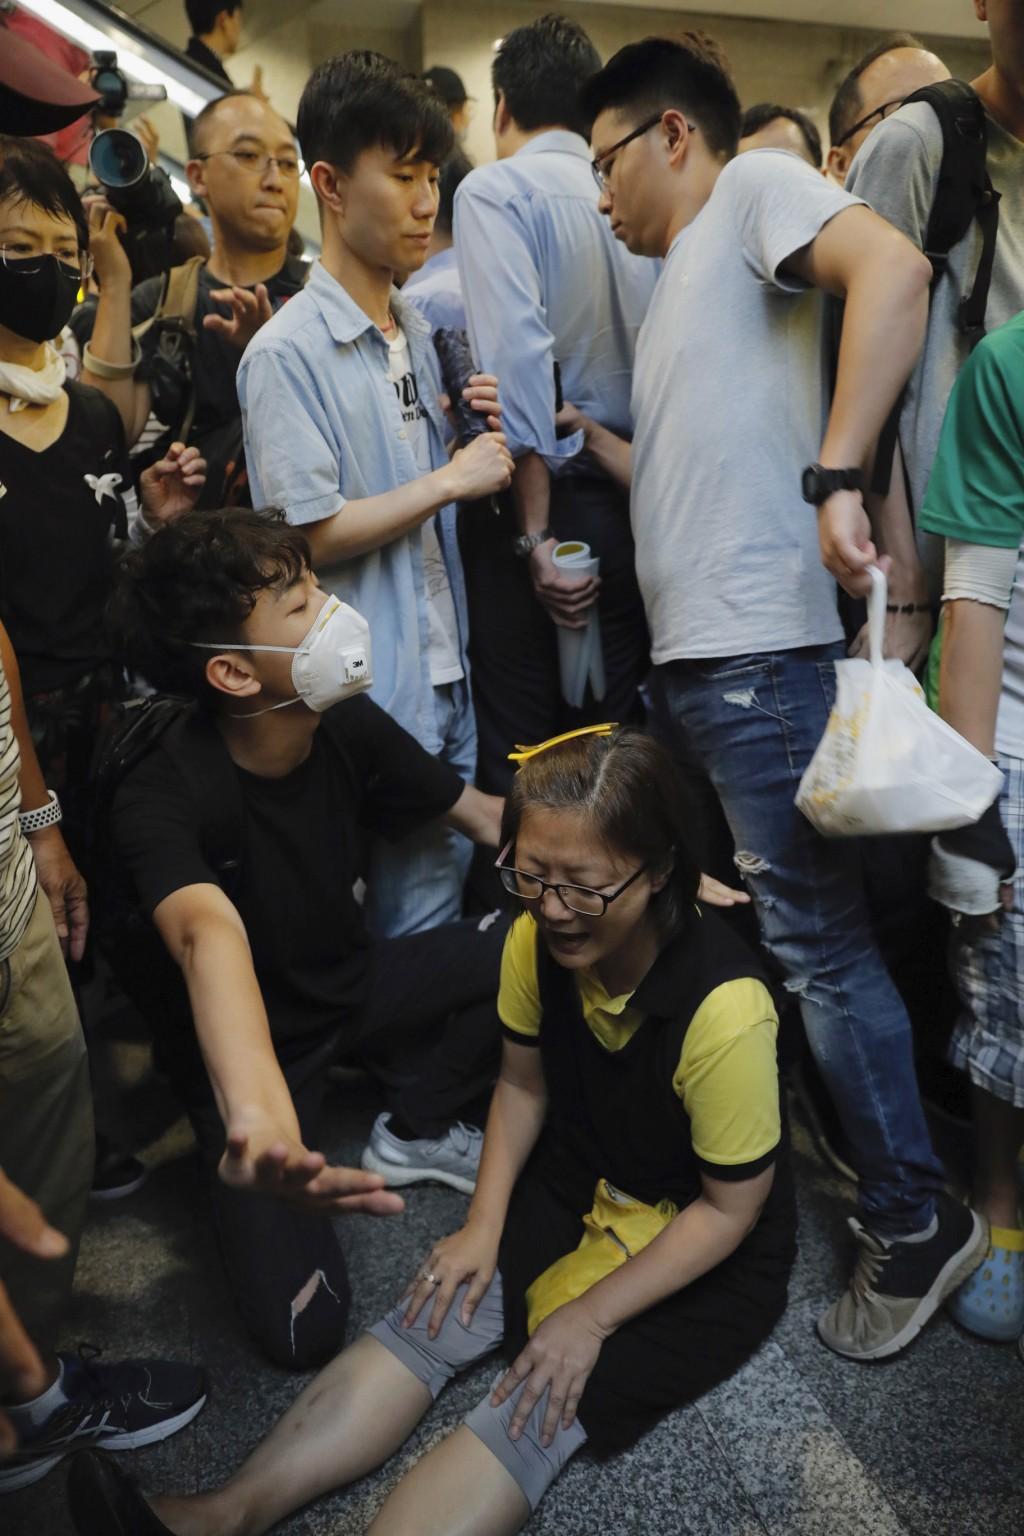 A protester sits down to block visitors in the lobby of the Hong Kong Revenue Tower in Hong Kong on Monday, June 24, 2019. Hong Kong has been rocked b...